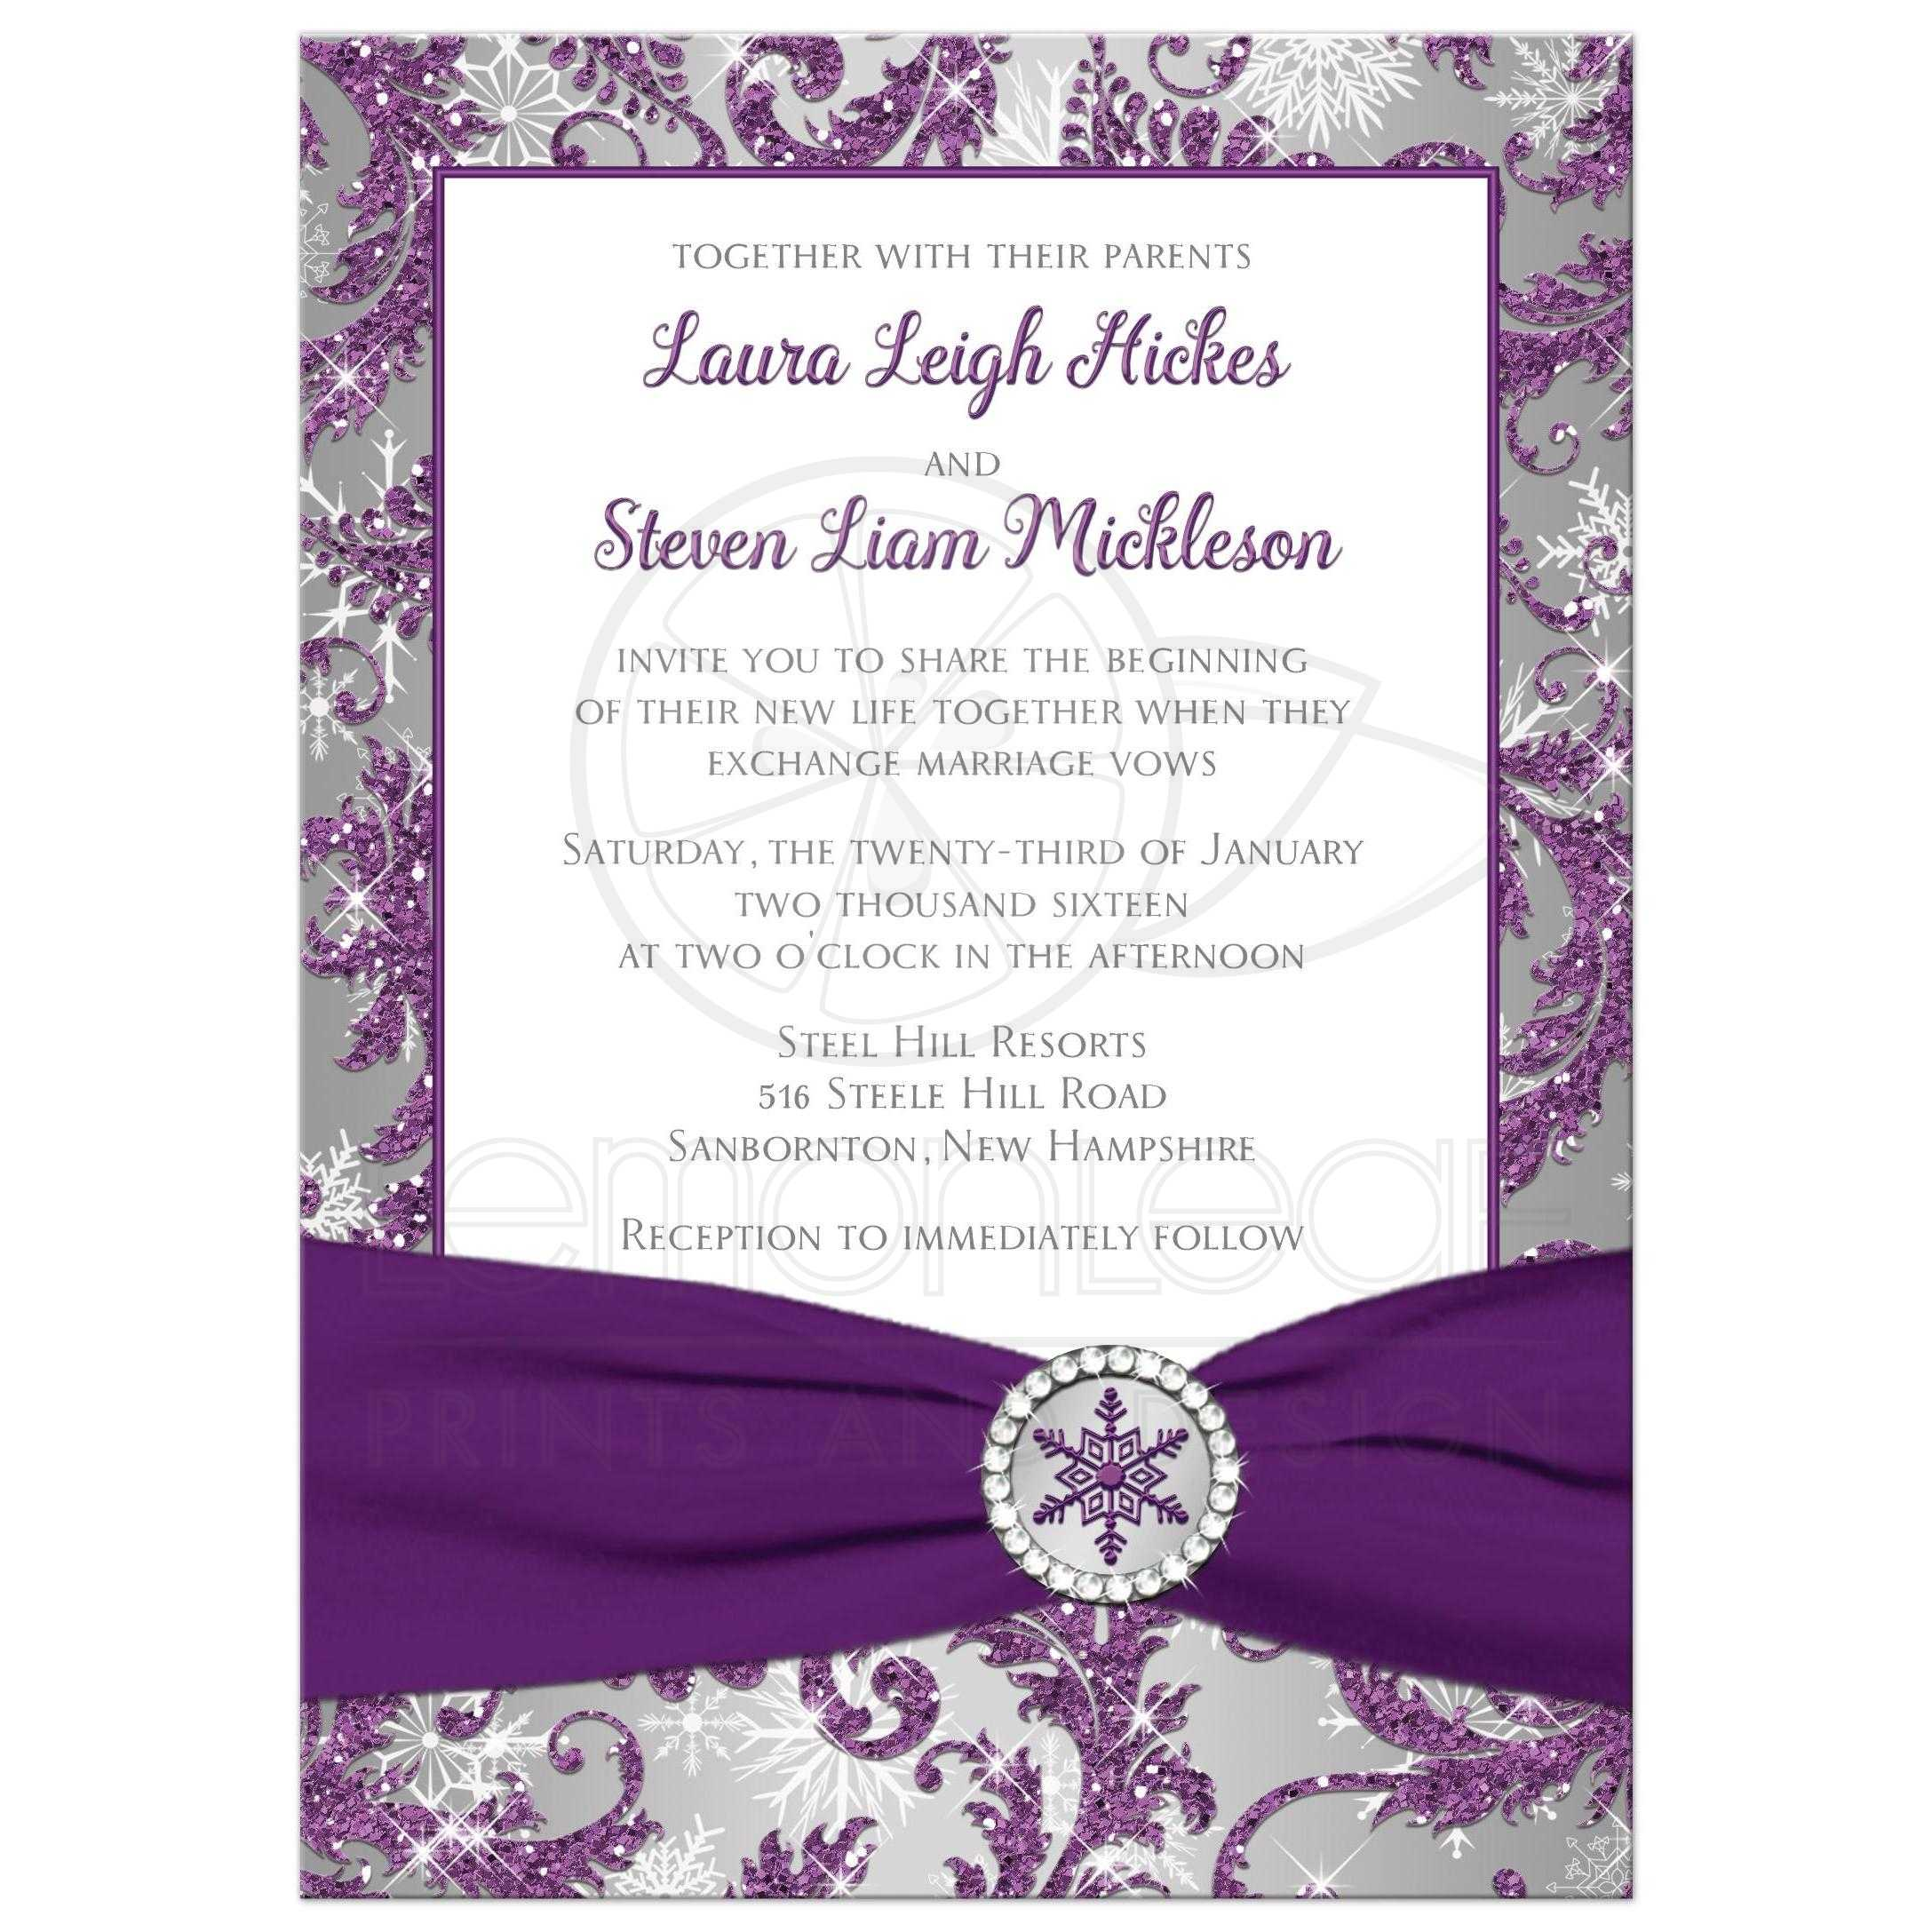 Winter Wonderland Wedding Invite In Ice Purple, Silver And White Snowflakes  With Ribbon And Crystal ...